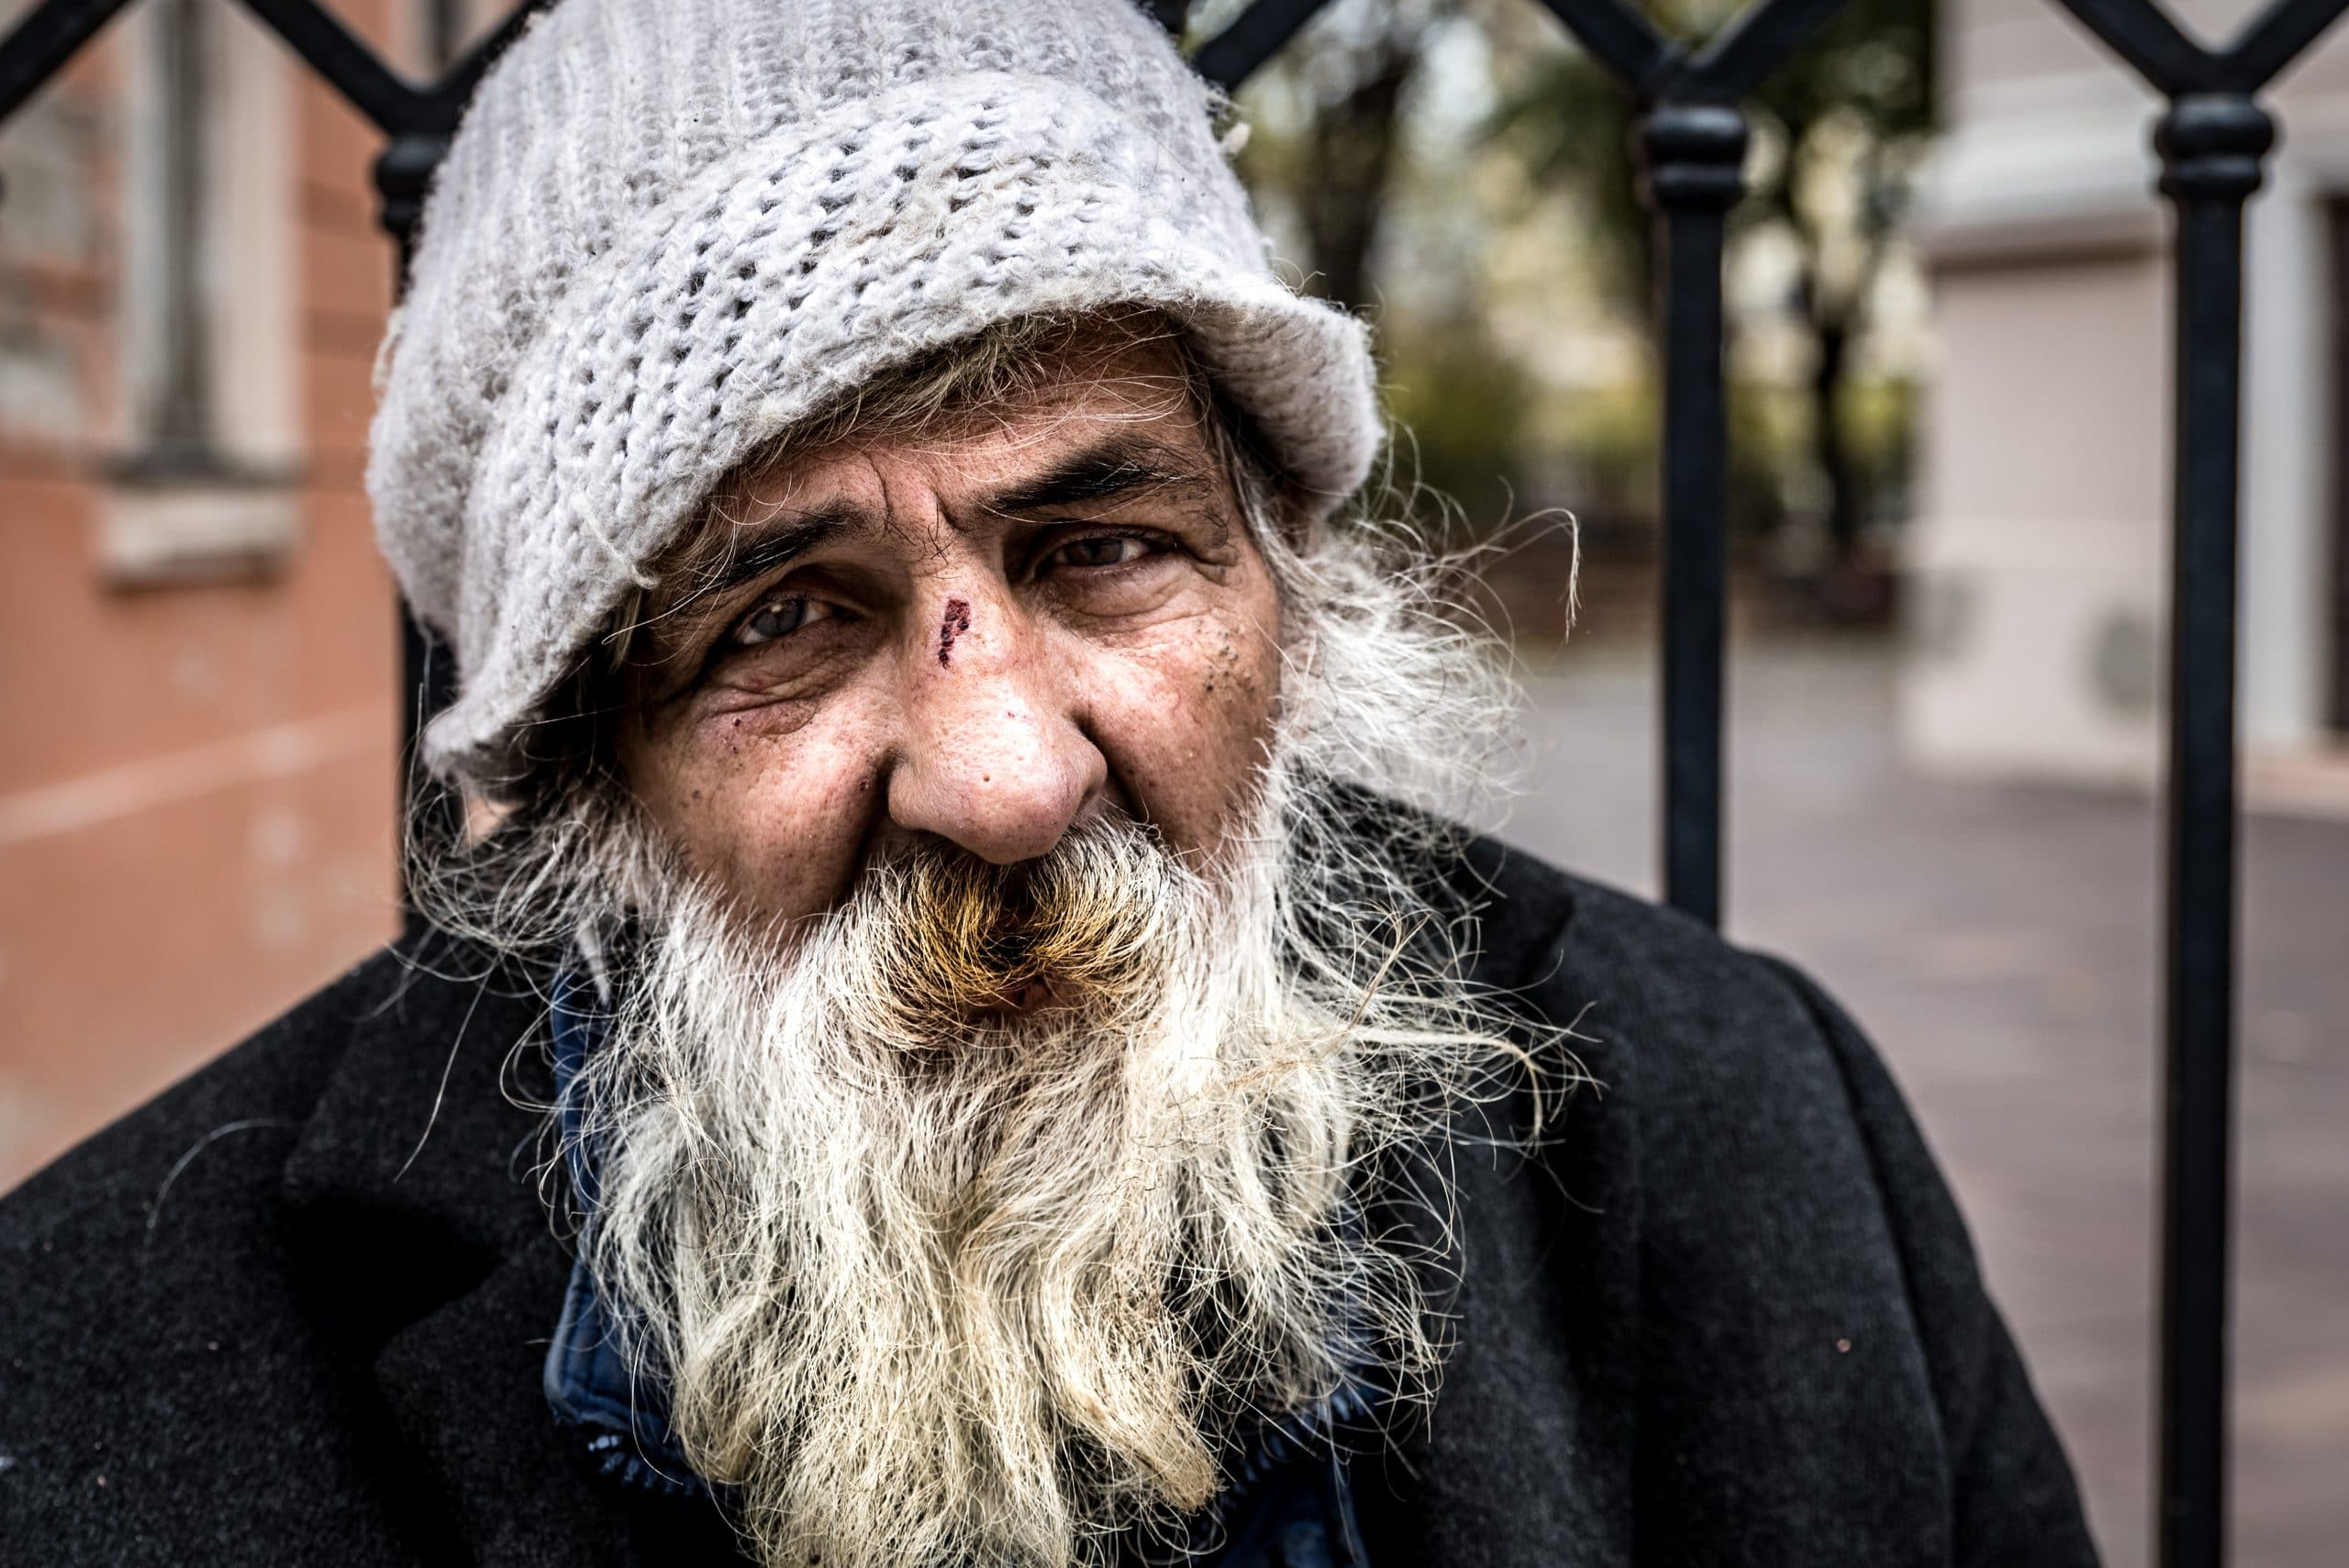 Close up portrait of old homeless